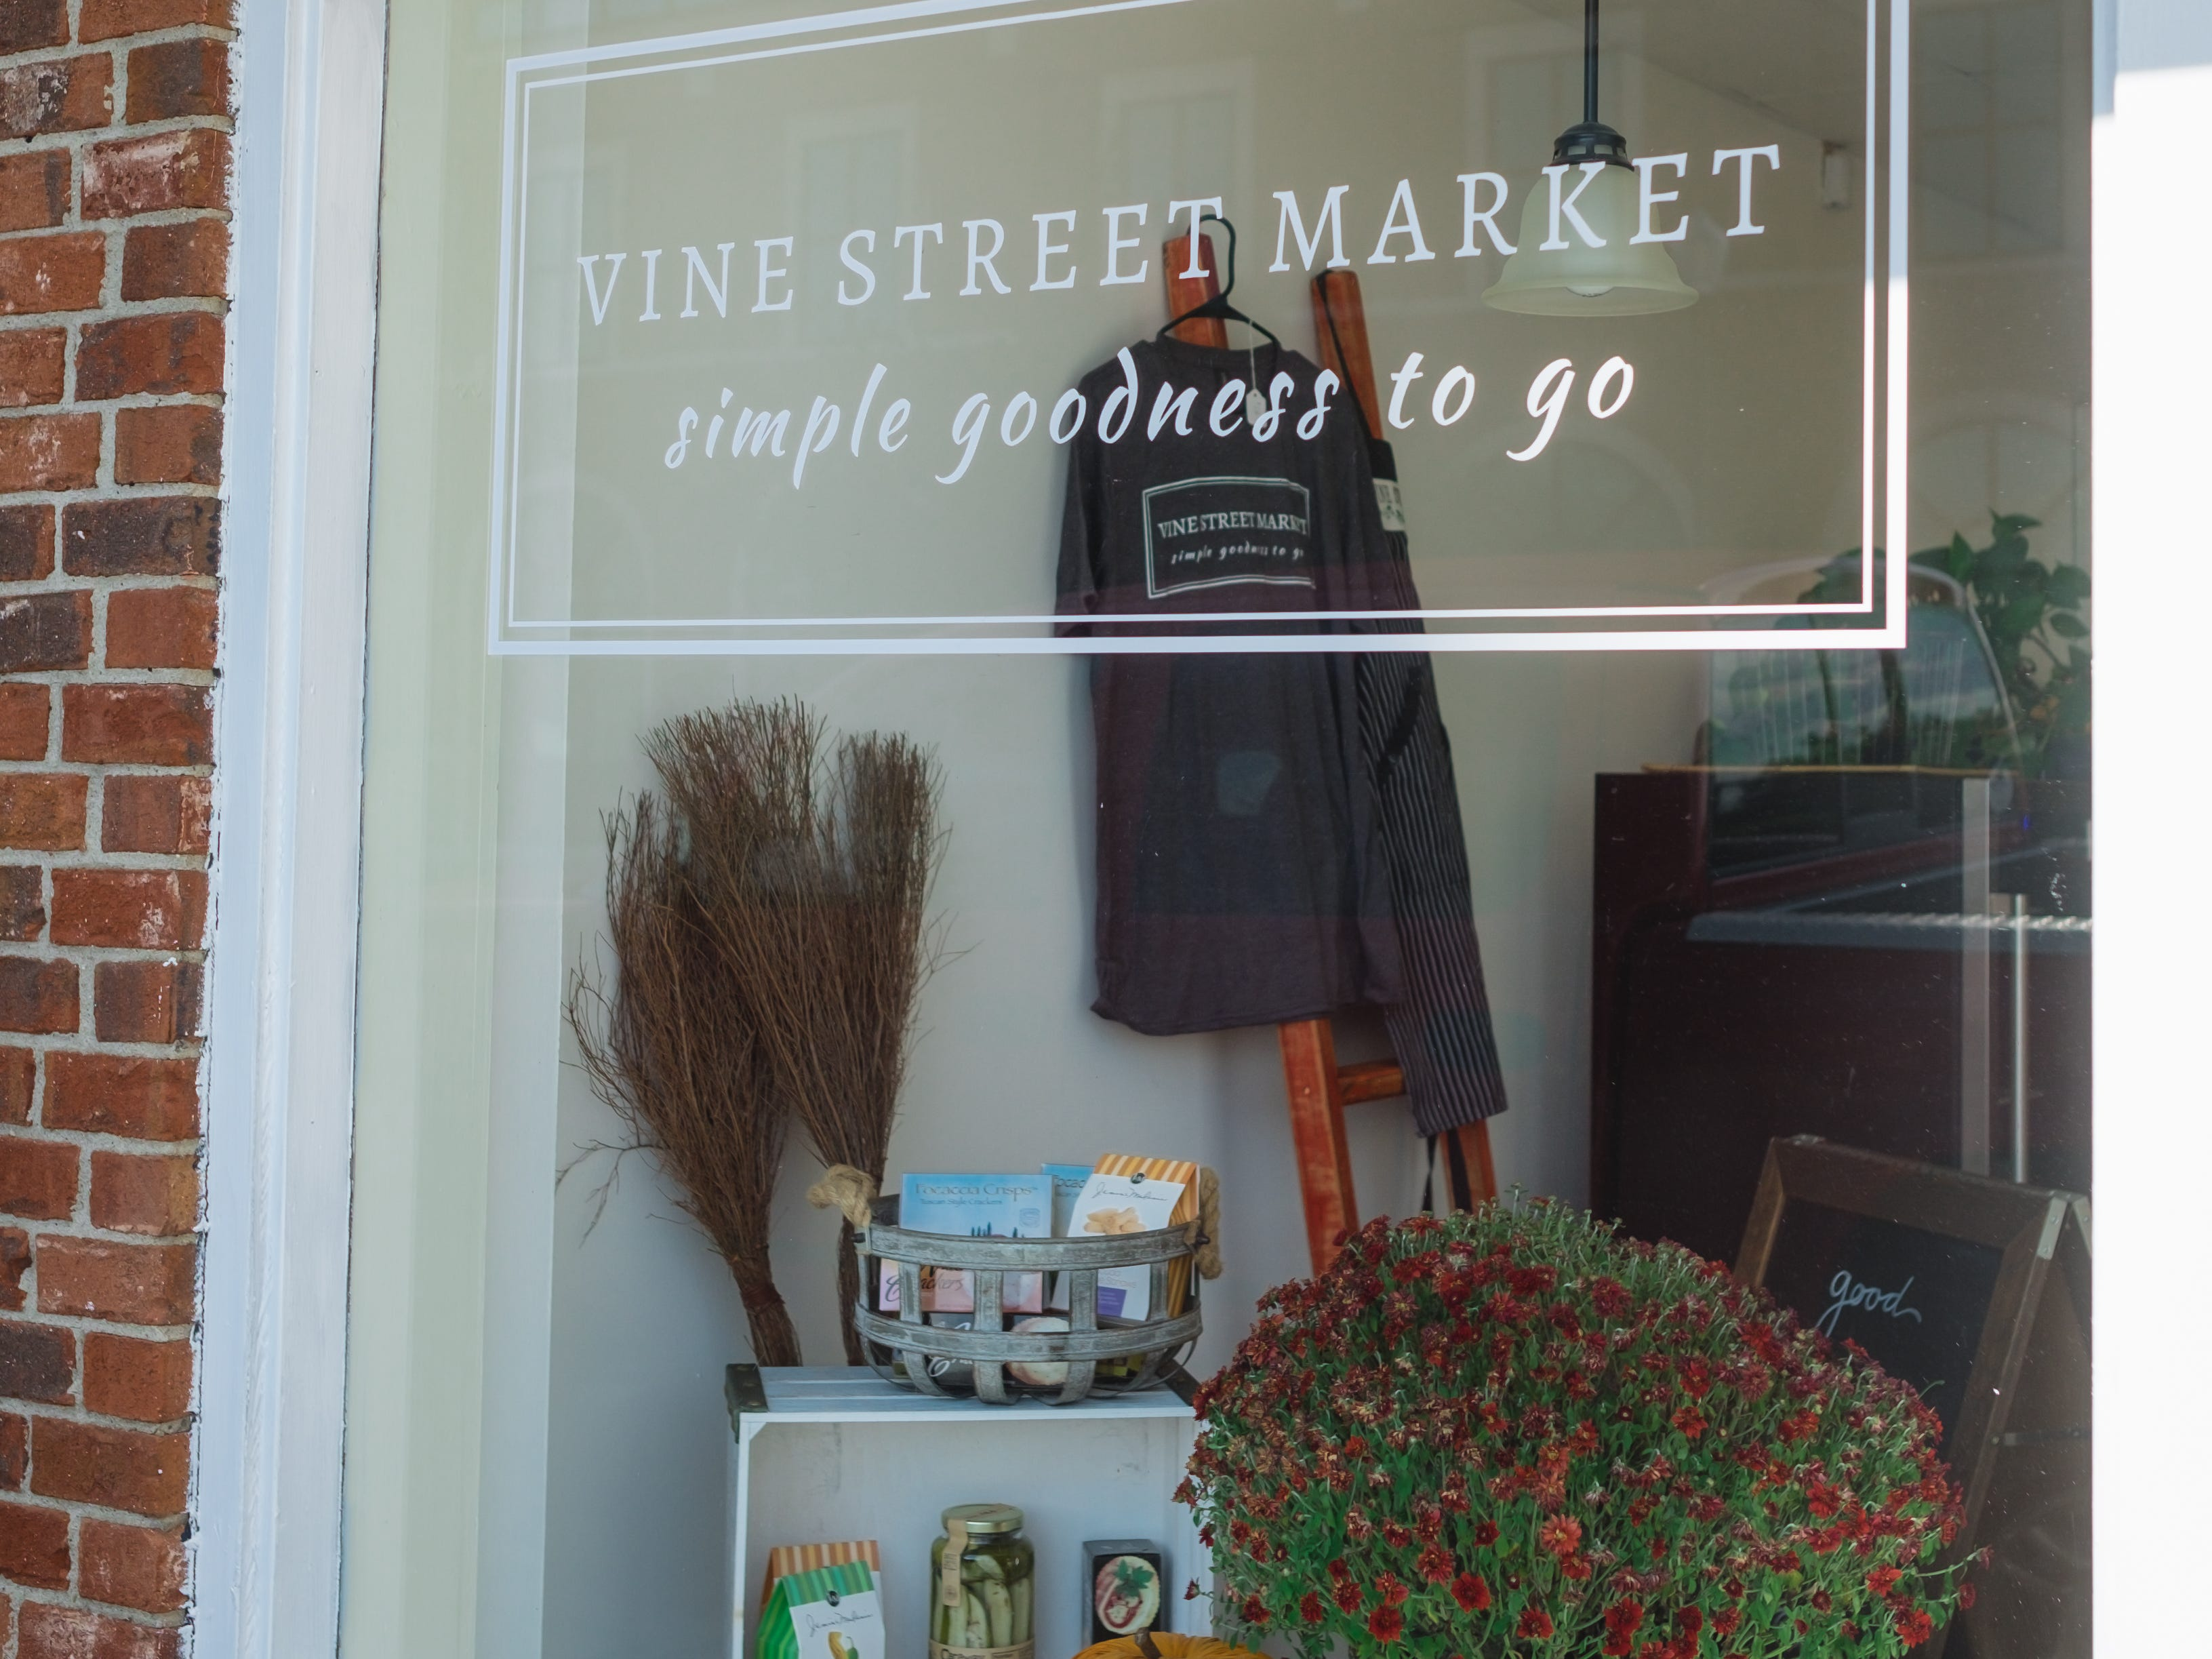 Vine Street Market, located near the intersection of Vine and Church Streets in downtown Murfreesboro, offers food items that can be reheated for dinner, and several gift options.